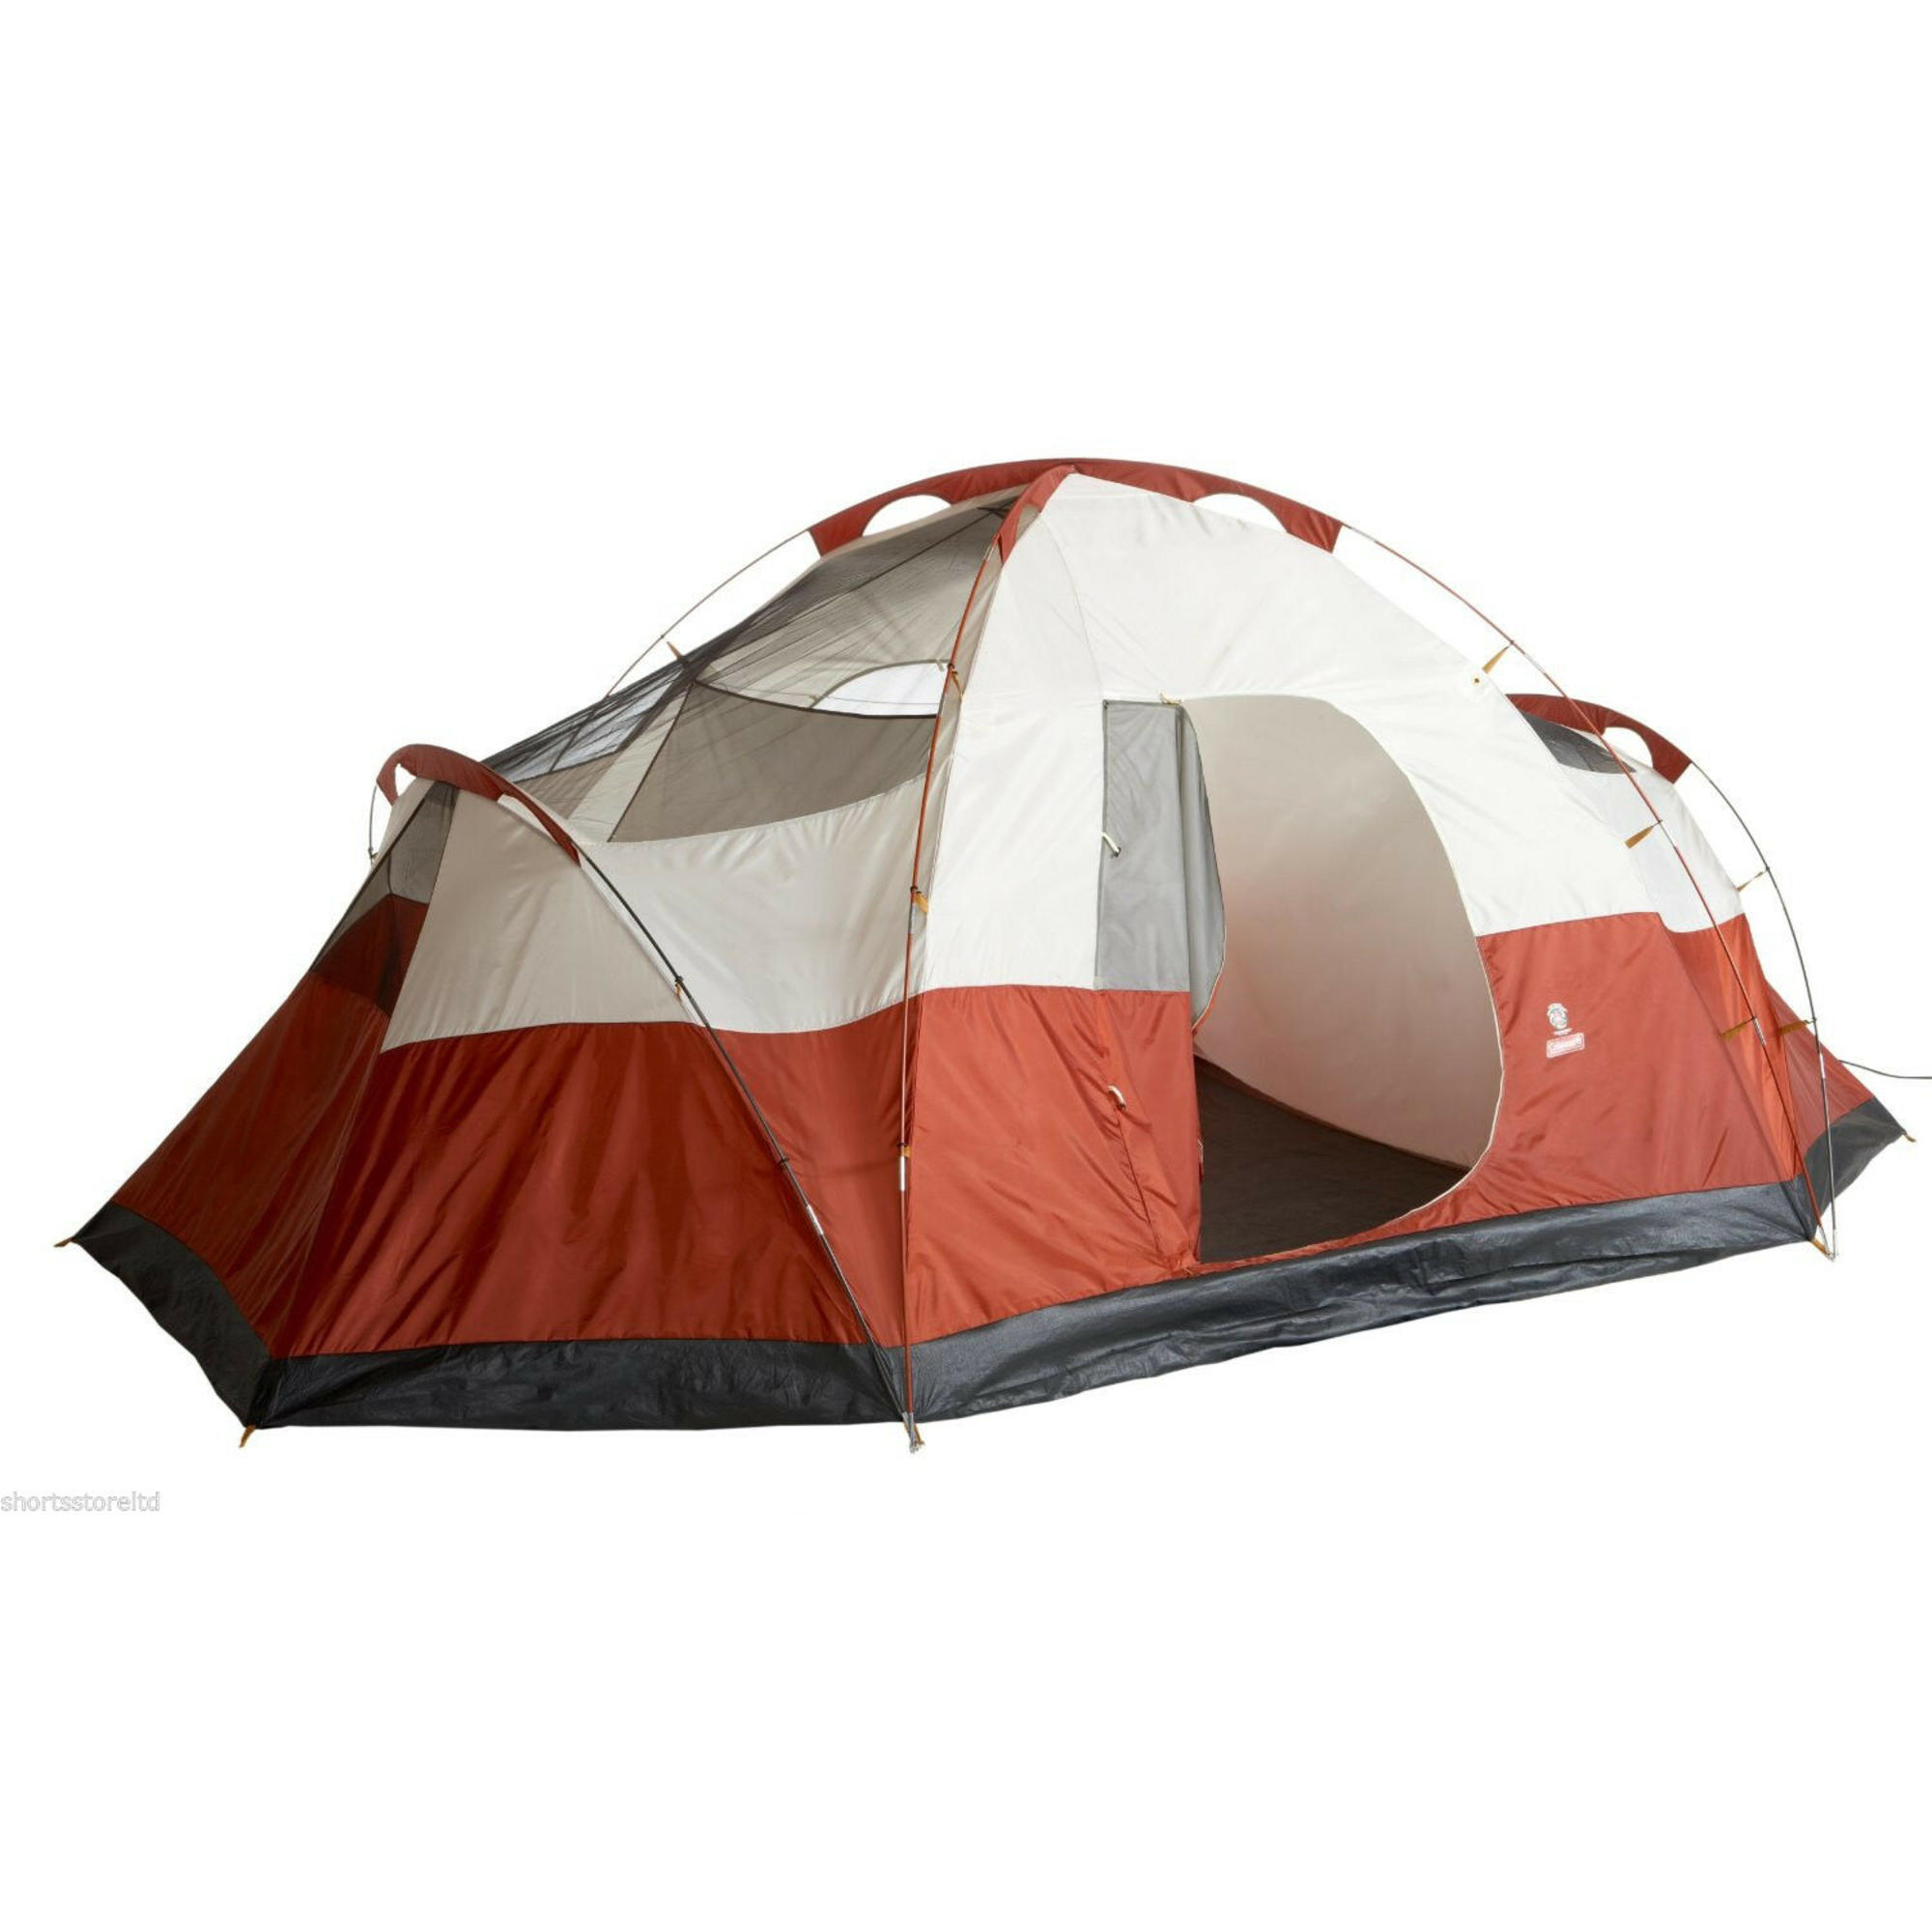 Coleman Canyon 8-person Outdoor Camping Tent, Red